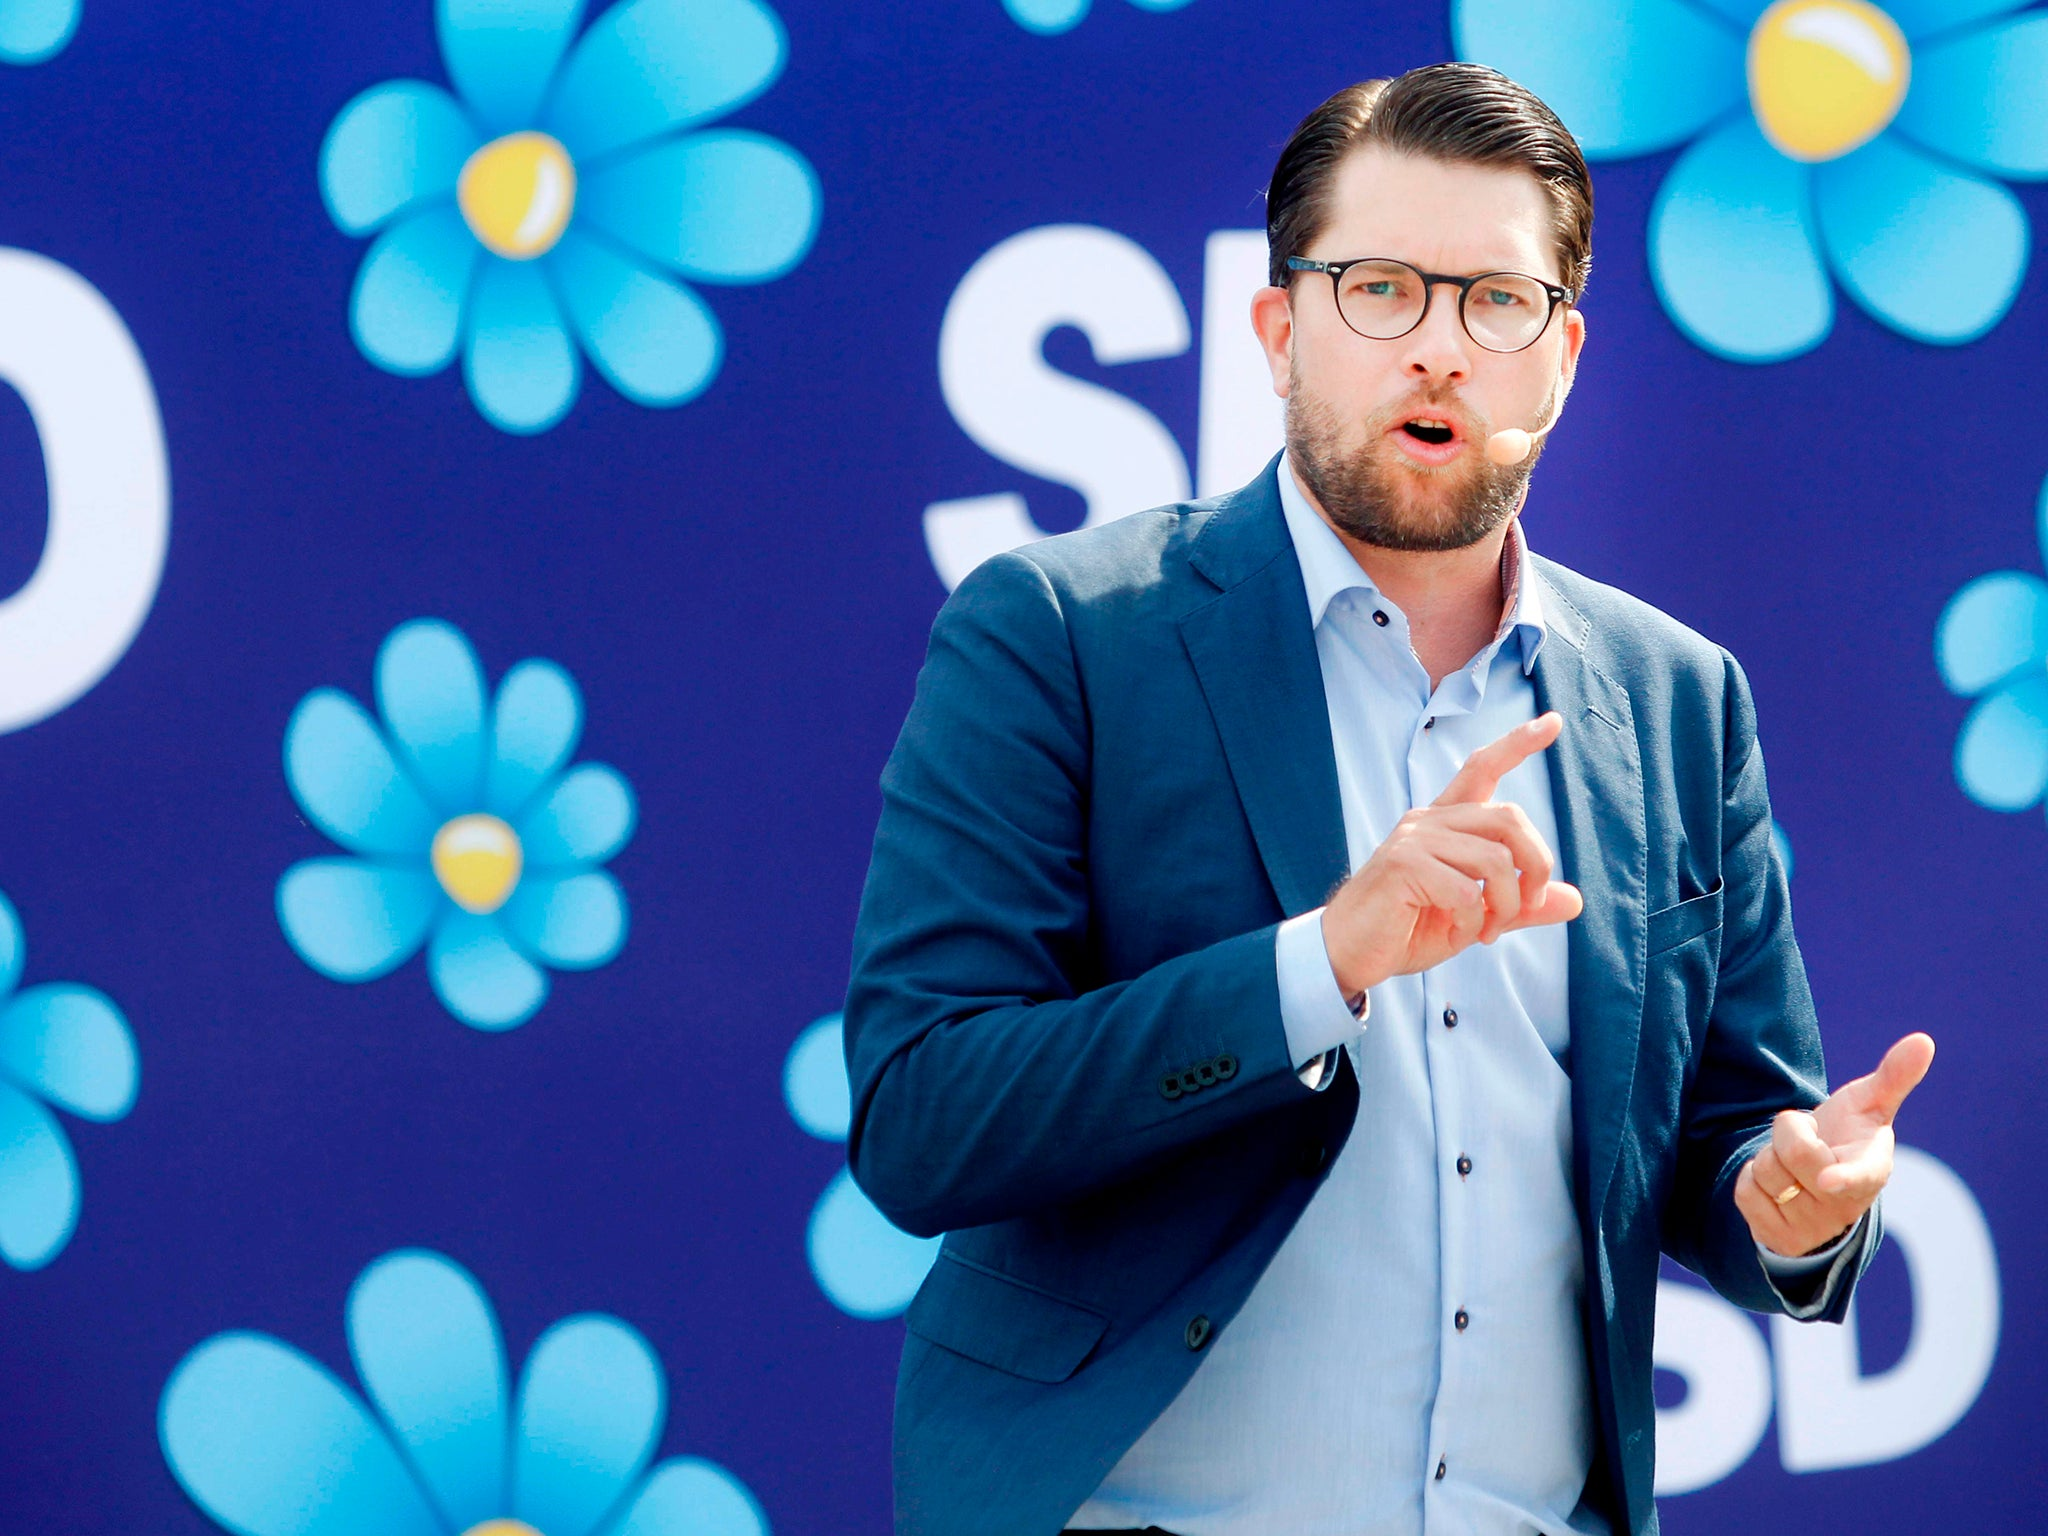 Sweden Democrats: How a nationalist, anti-immigrant party took root in a liberal Nordic haven